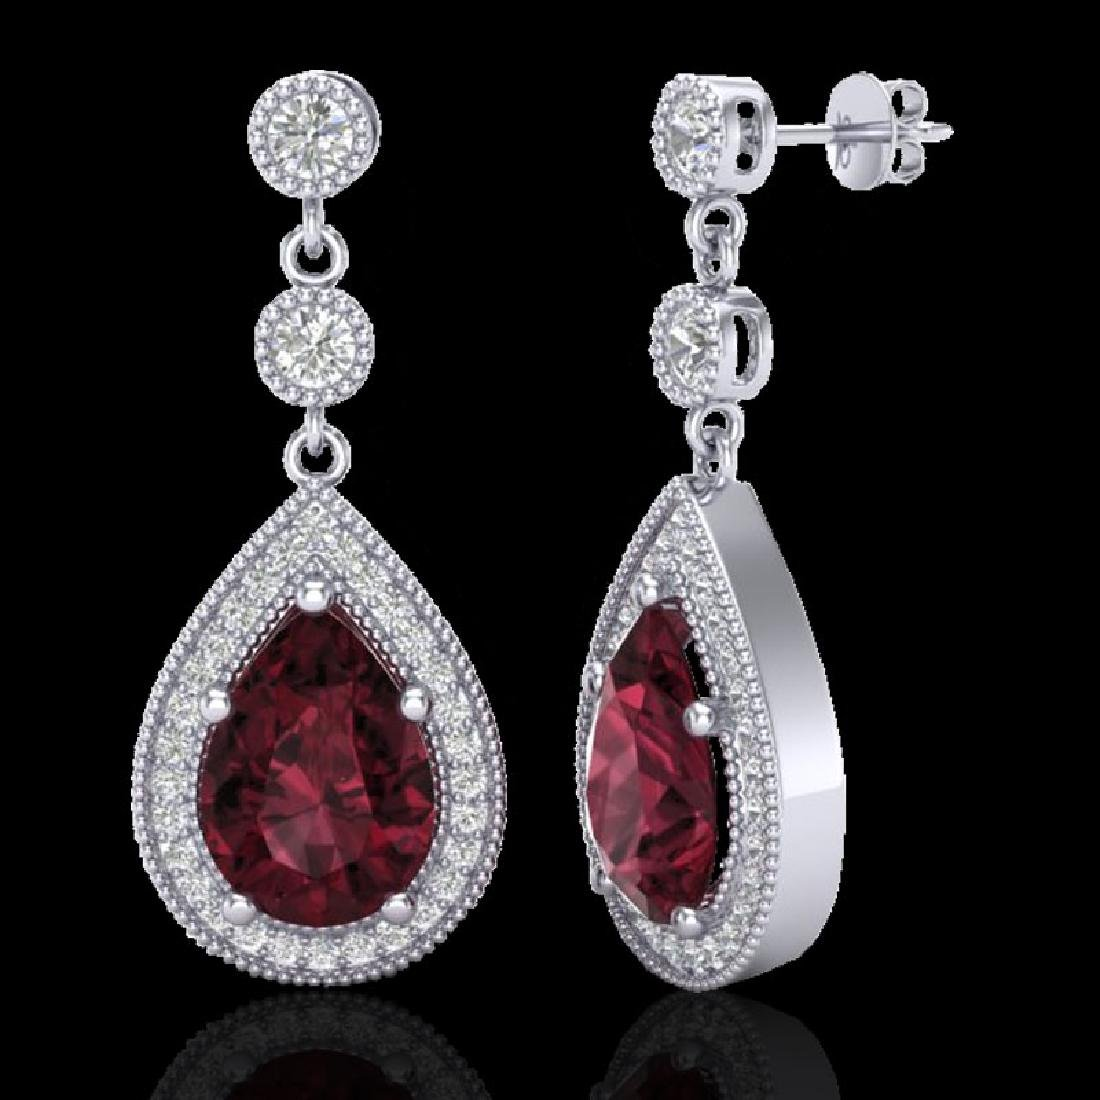 4.50 CTW Garnet & Micro Pave VS/SI Diamond Earrings - 2